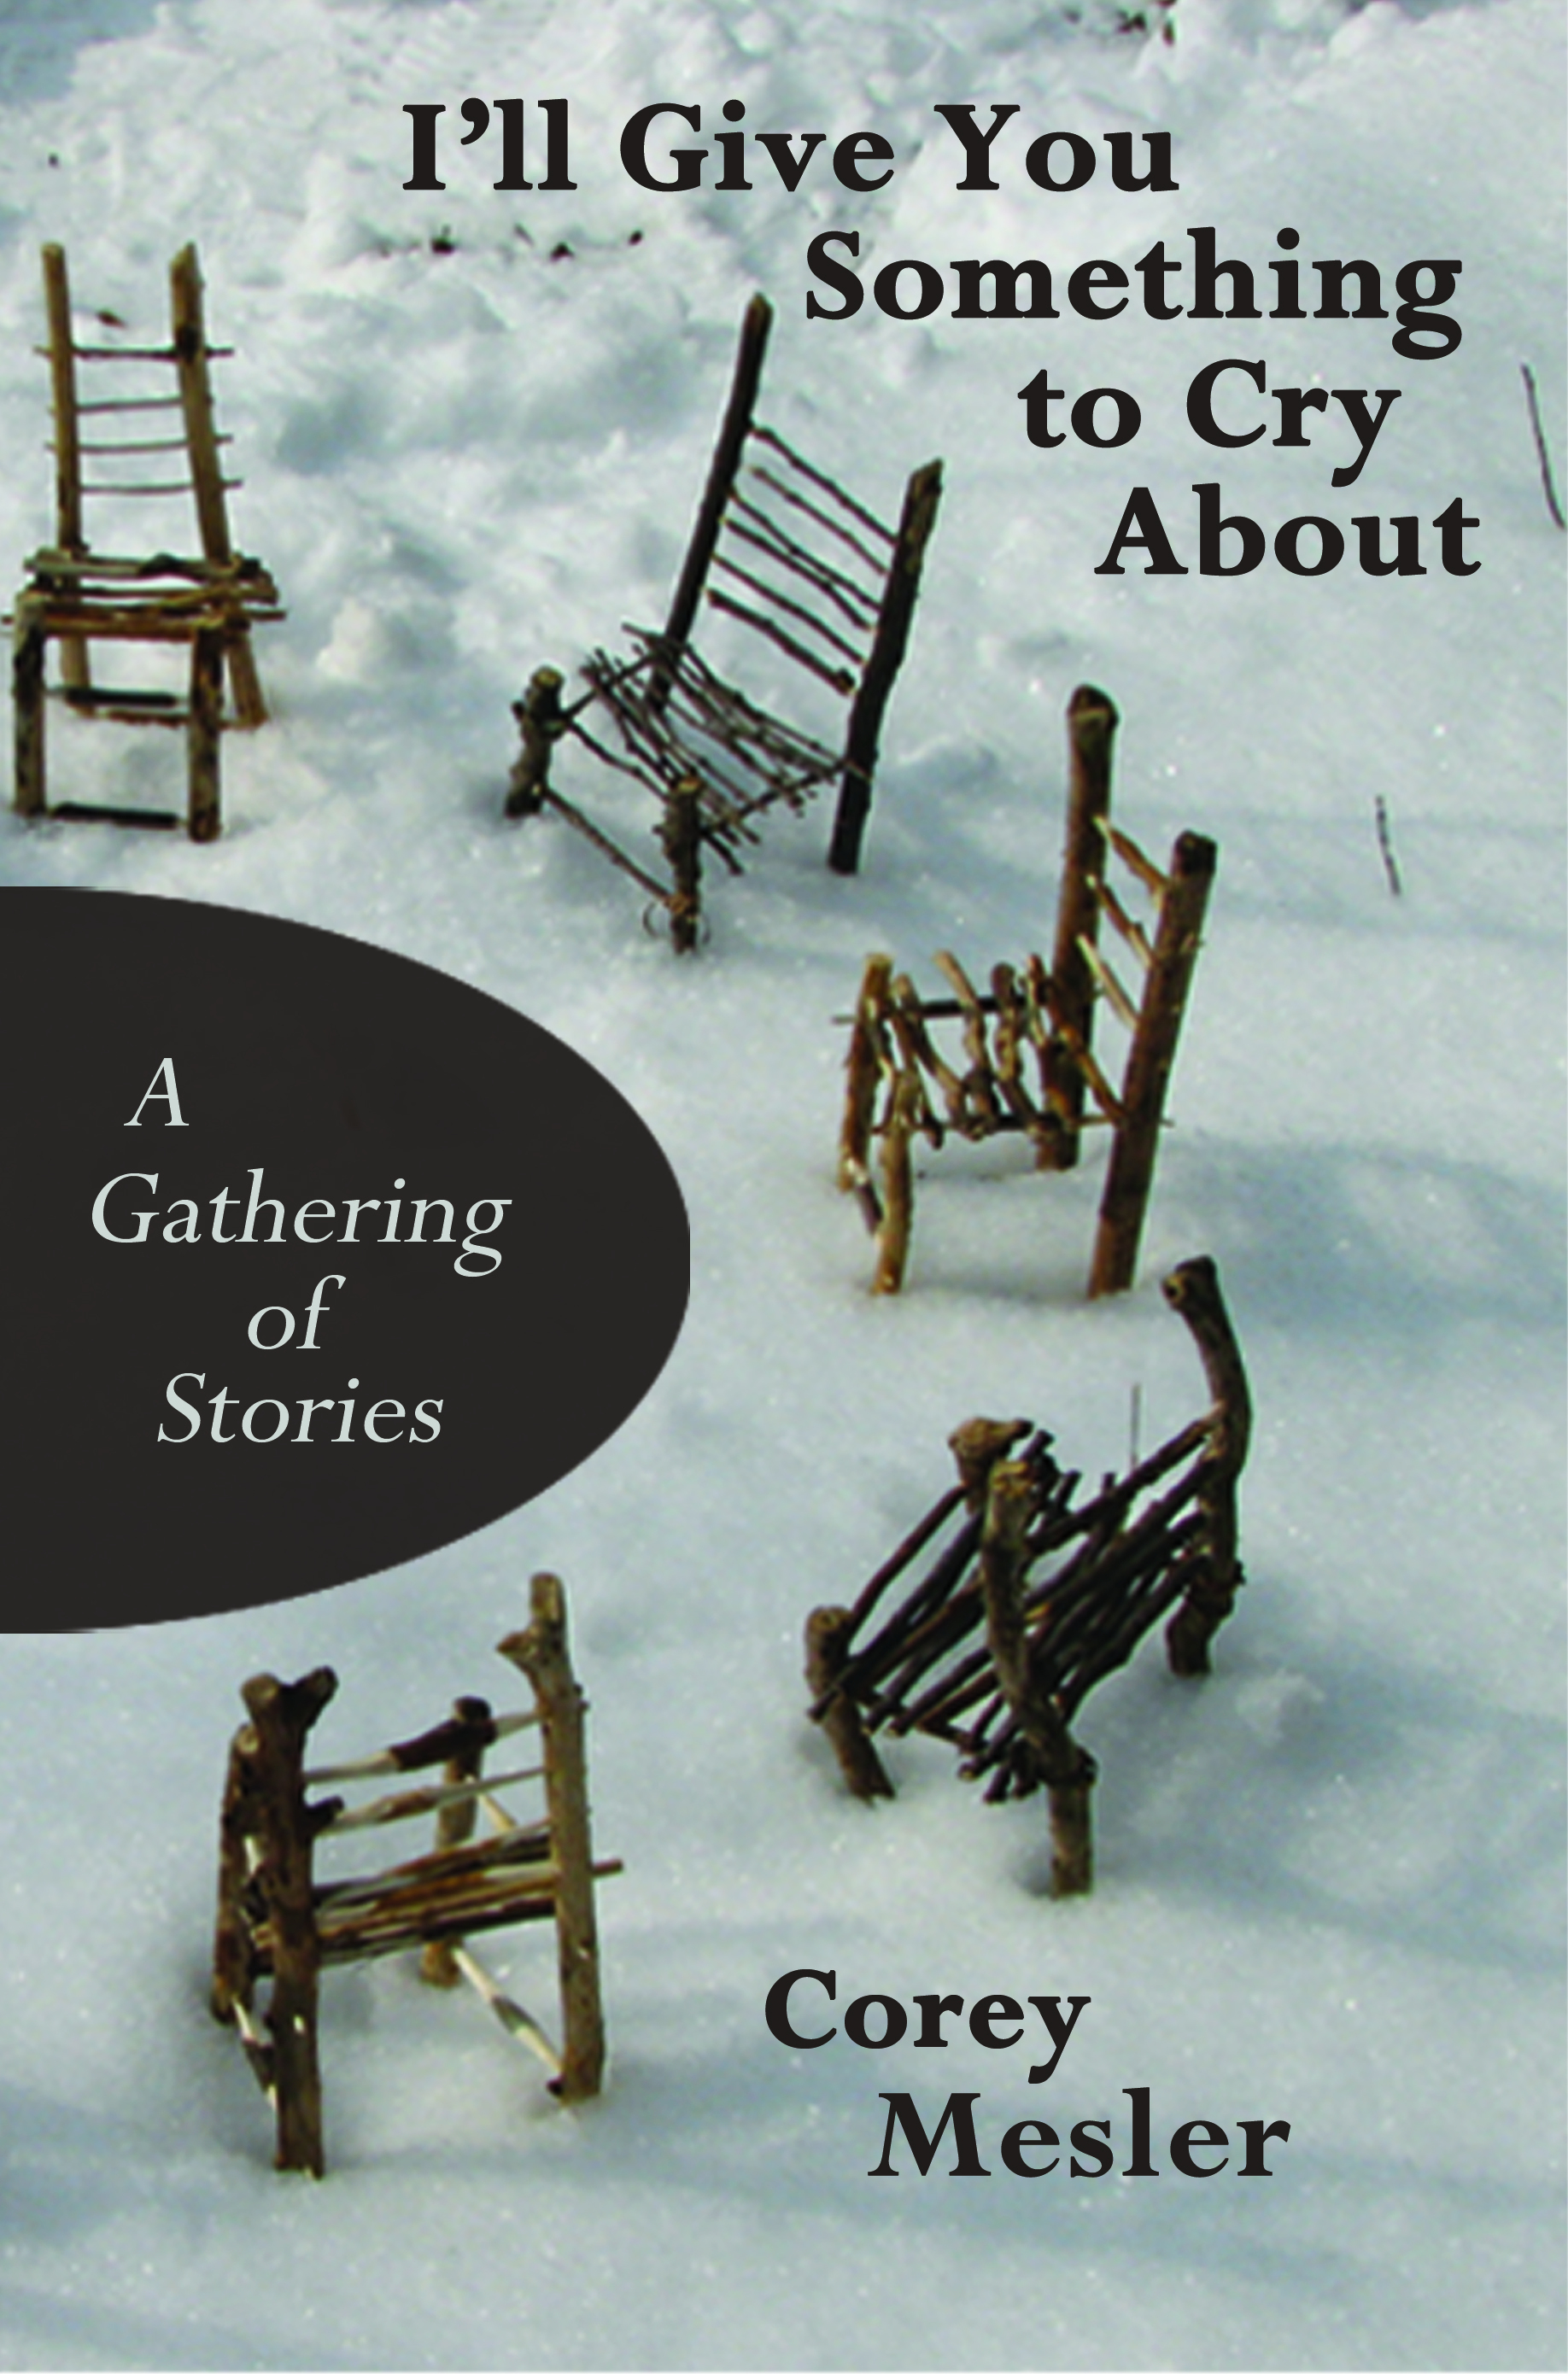 I'll Give You Something to Cry About: A Gathering of Stories